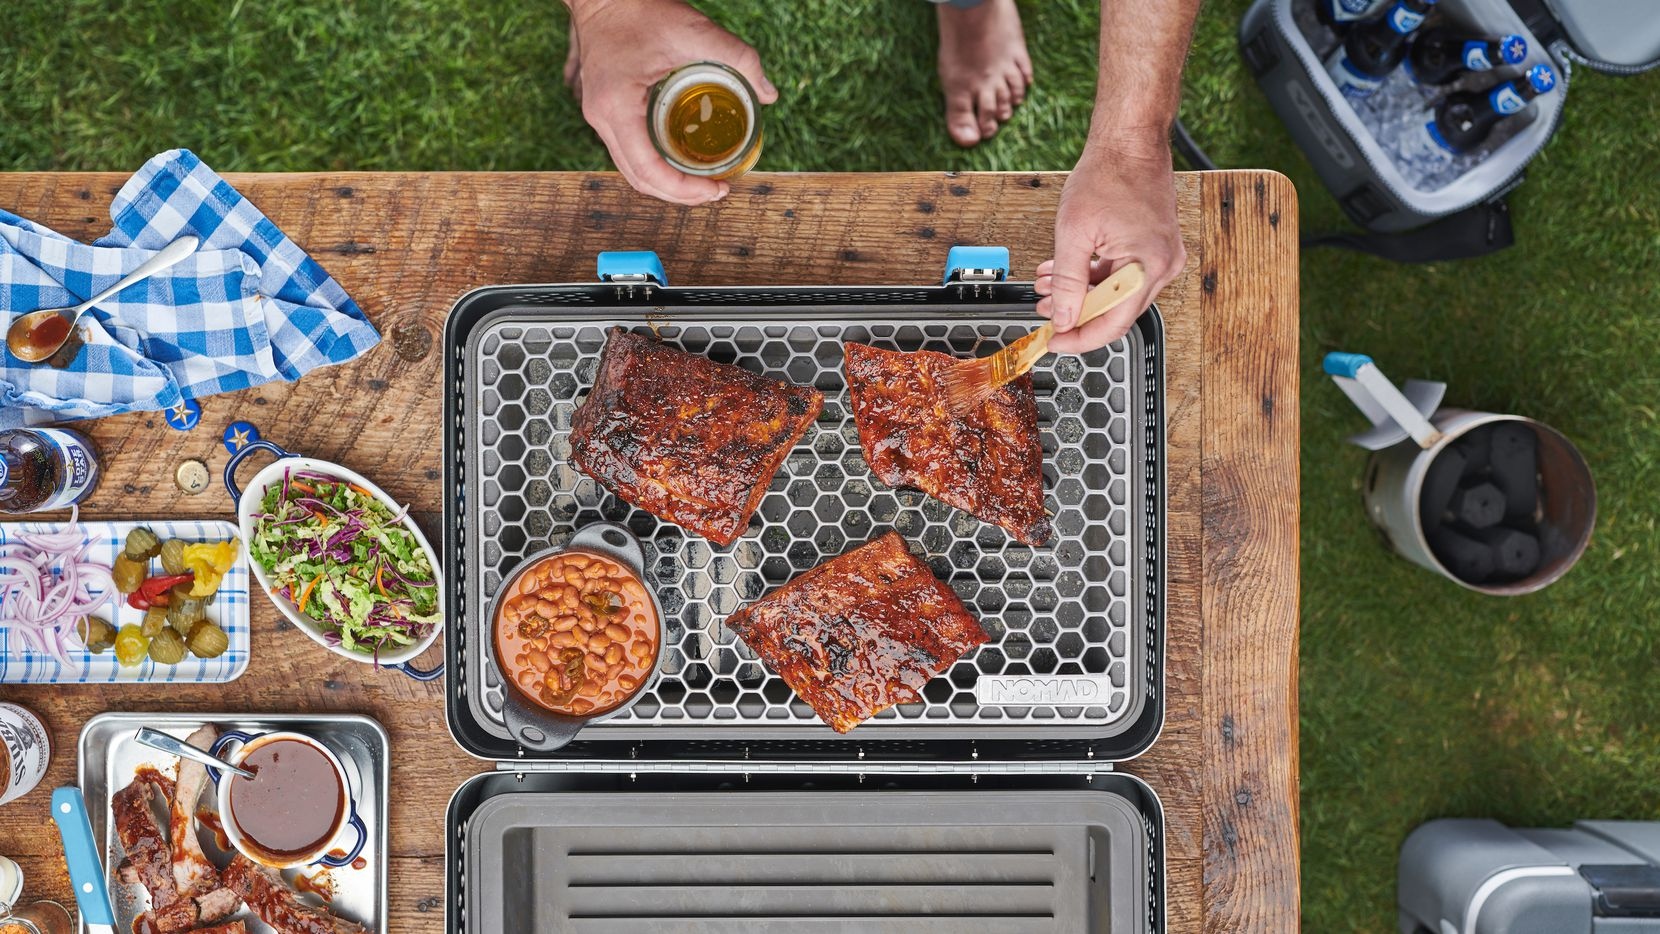 Nomad Grills is a portable charcoal grill and smoker from Dallas entrepreneurs.